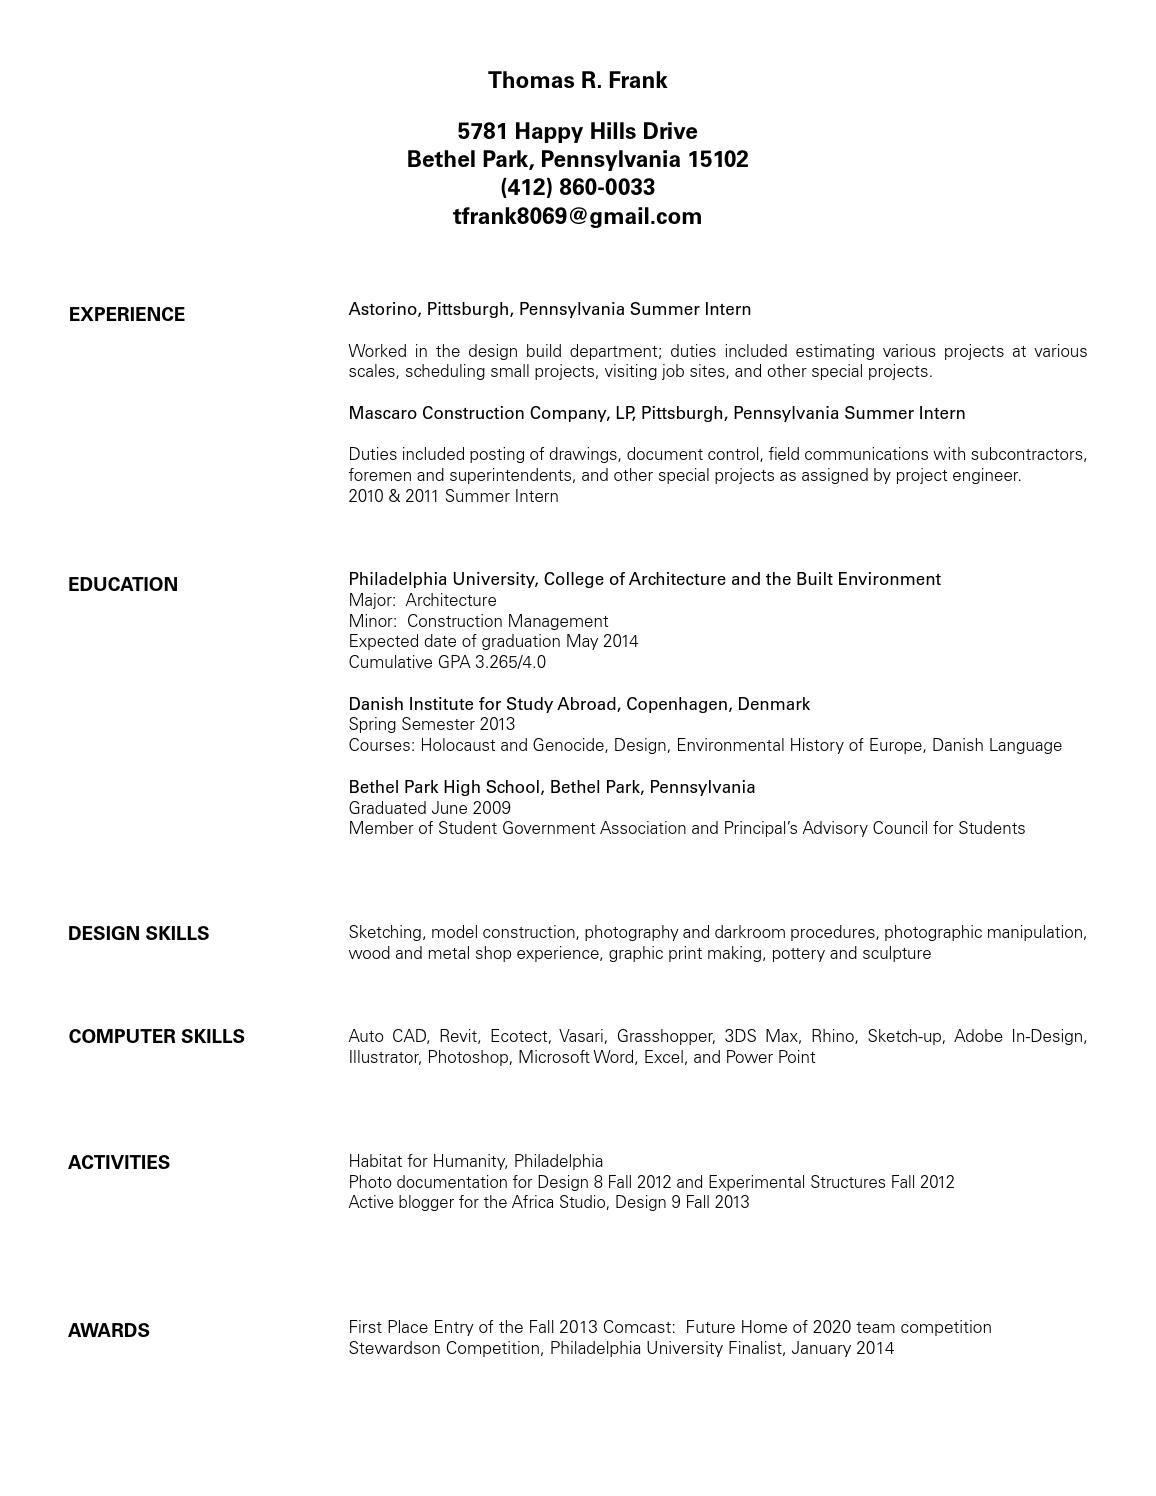 resume by thomas frank